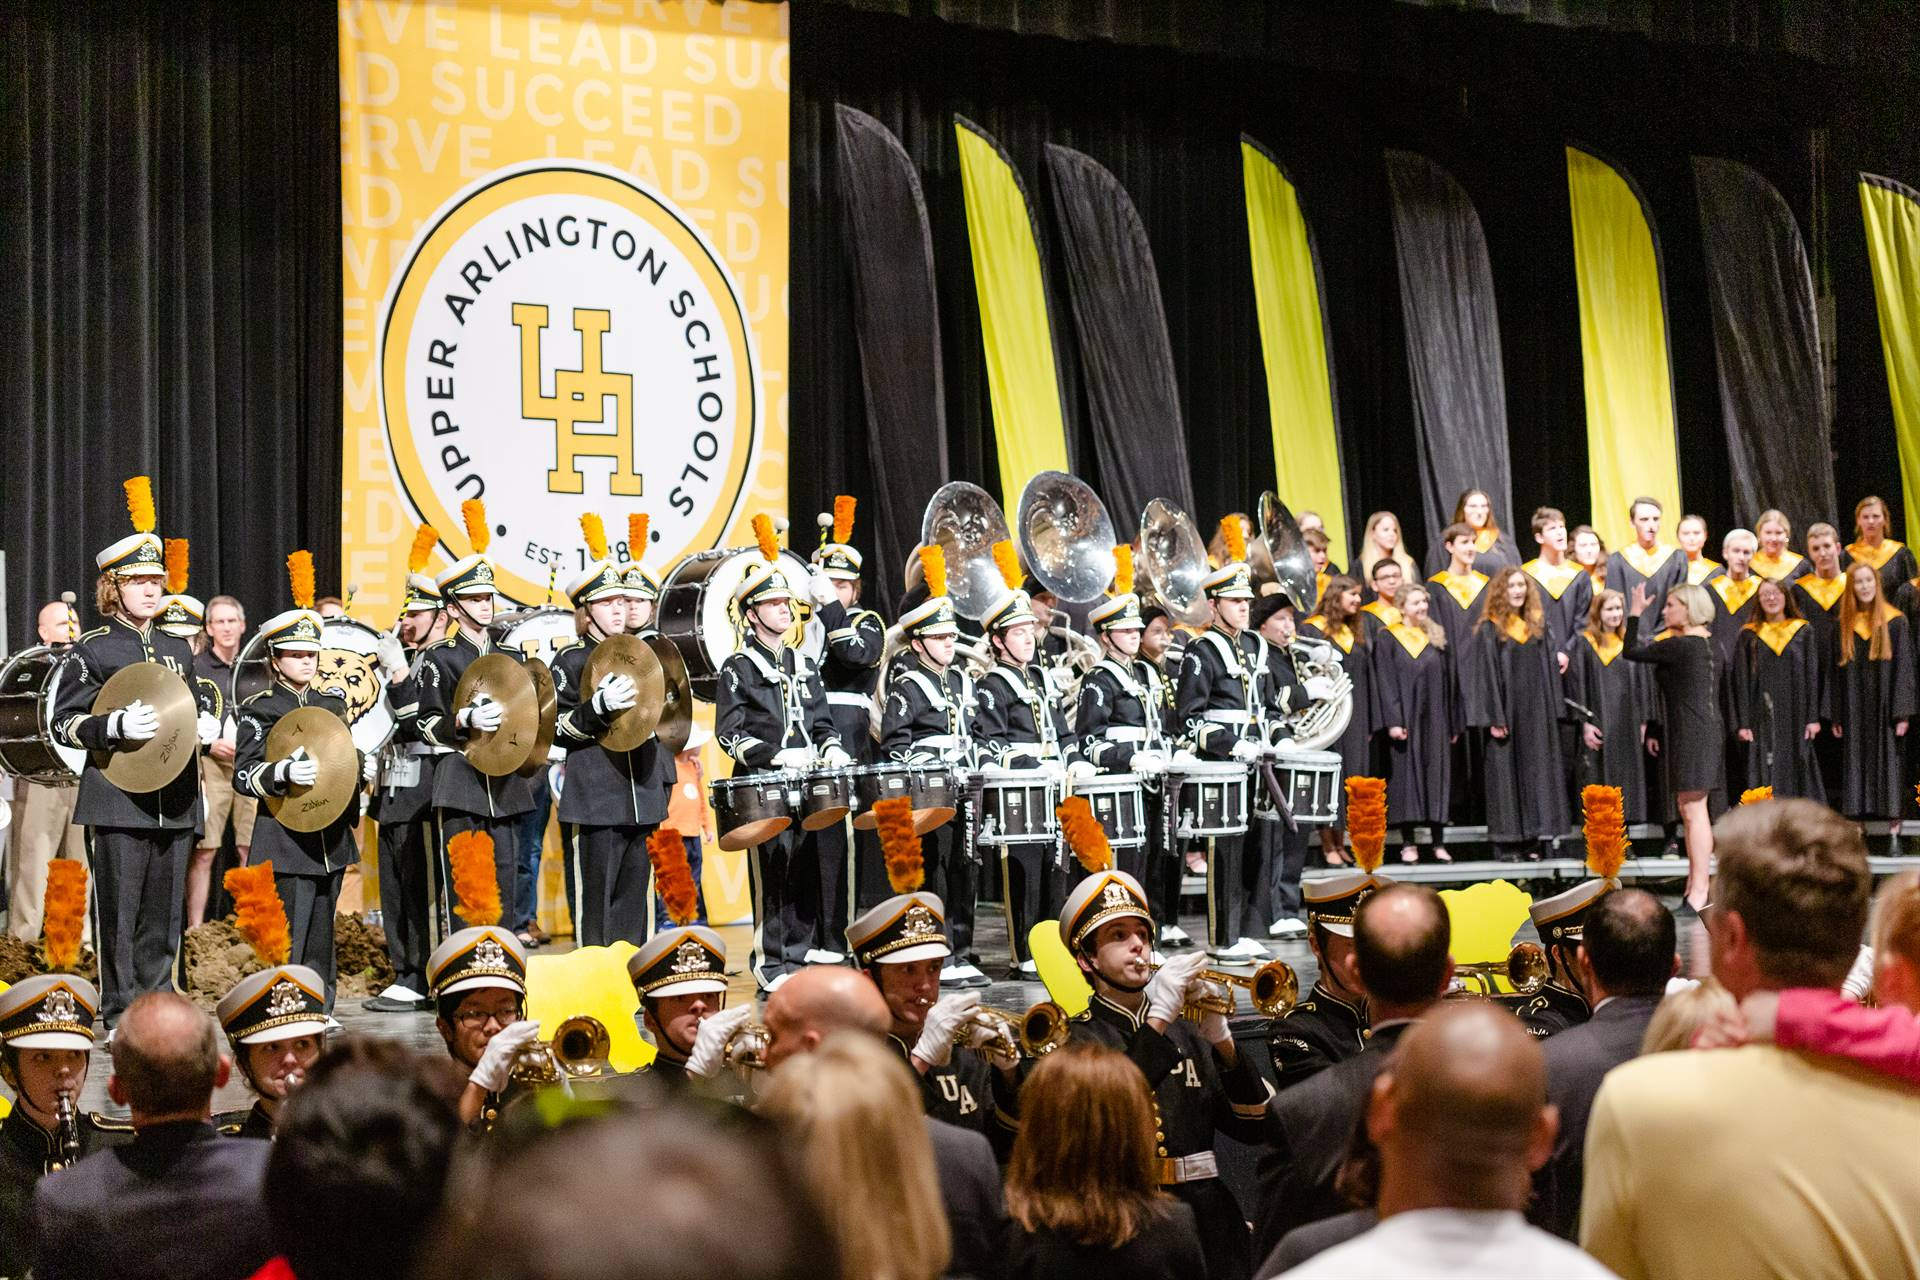 The marching band and choir performing